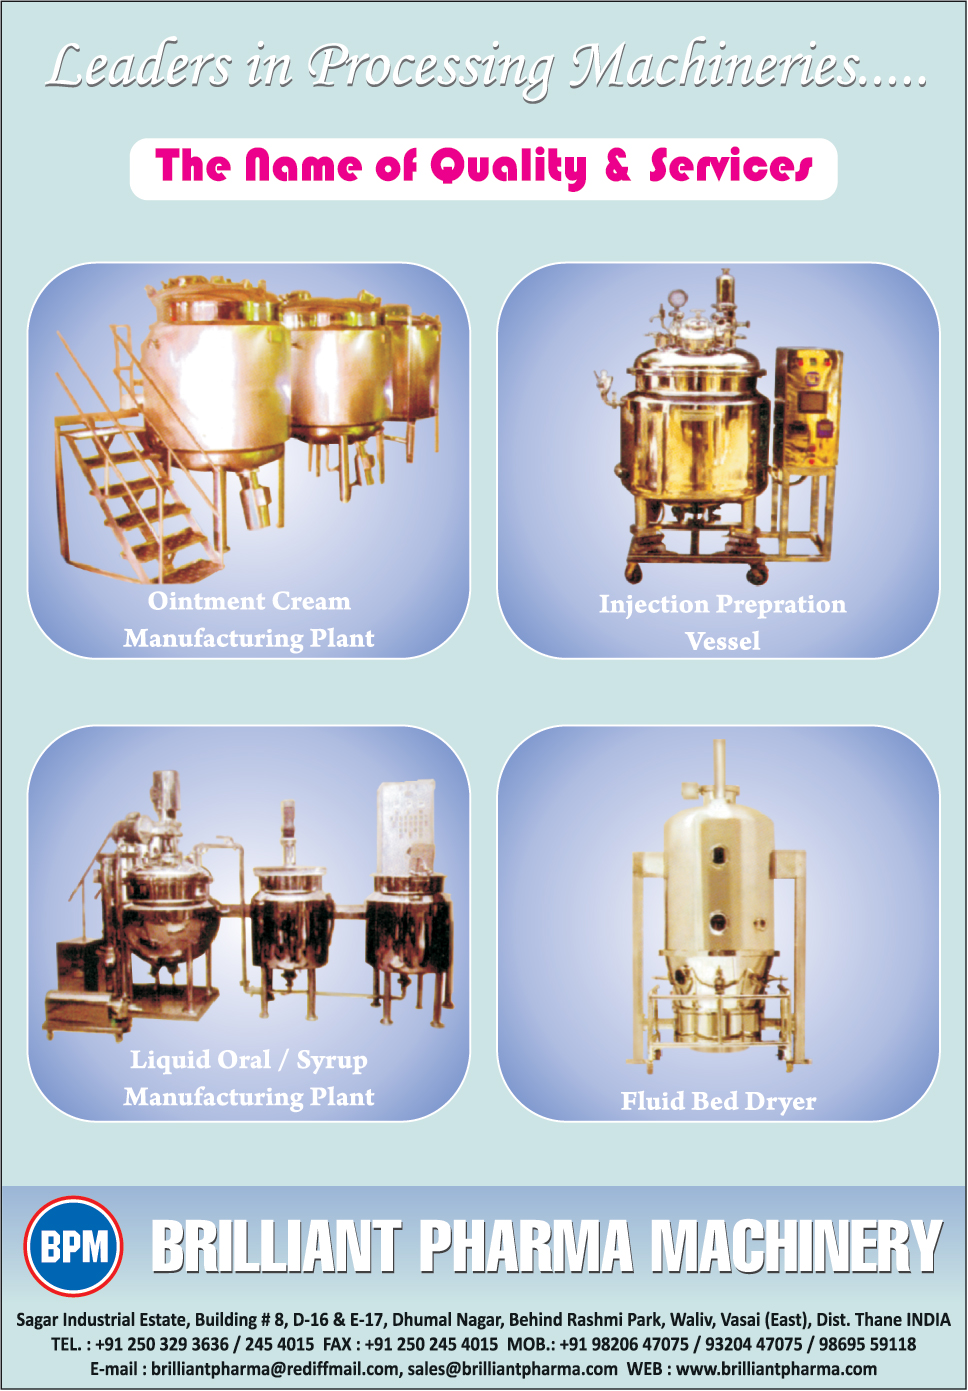 Ointment Cream Manufacturing Plants, Injection Preparation Vessels, Liquid Oral Manufacturing Plants, Liquid Syrup Manufacturing Plants, Fluid Bed Dryers,